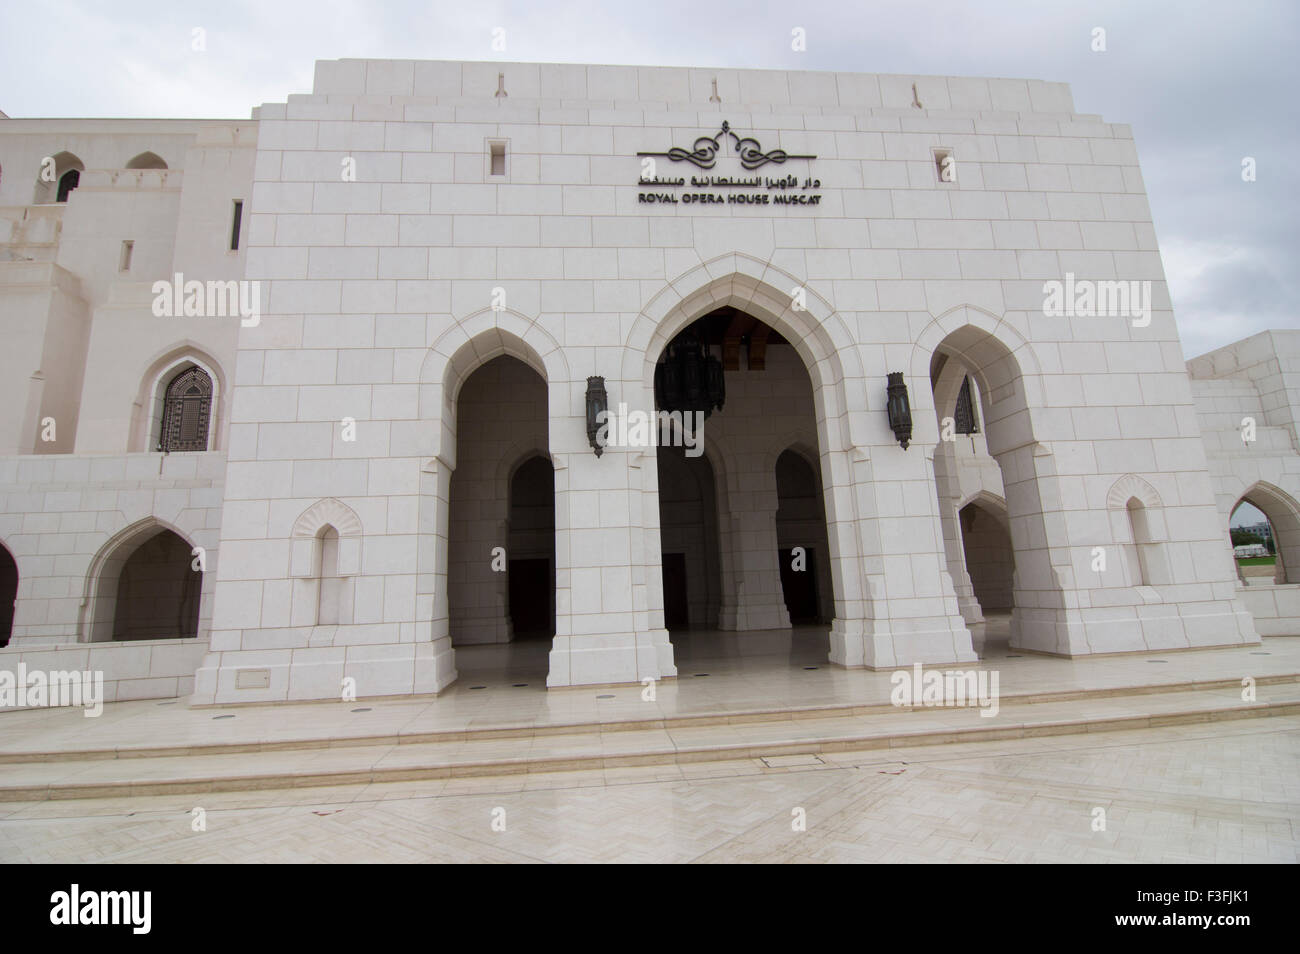 White stone exterior of the Royal Opera House in Shati Al-Qurm ...